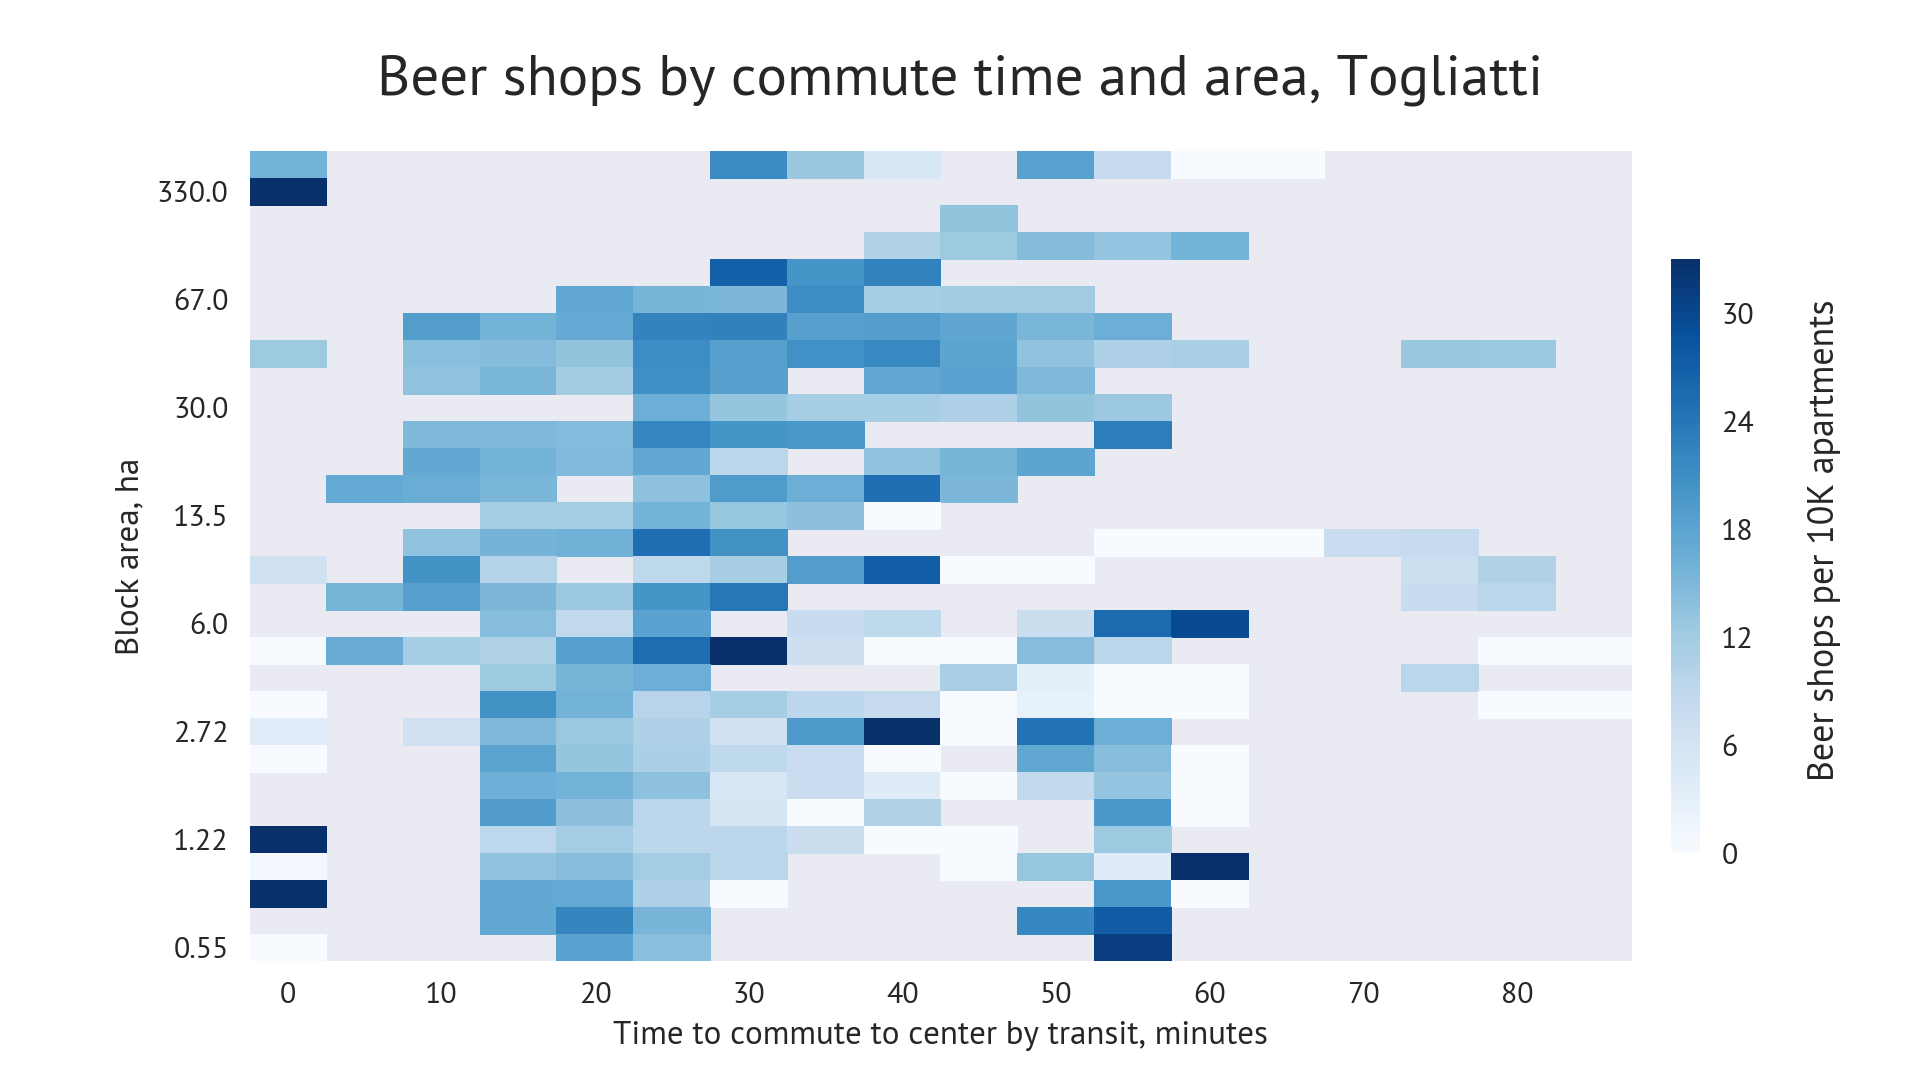 Beershop diffusion by block area and transit travel time. Togliatti